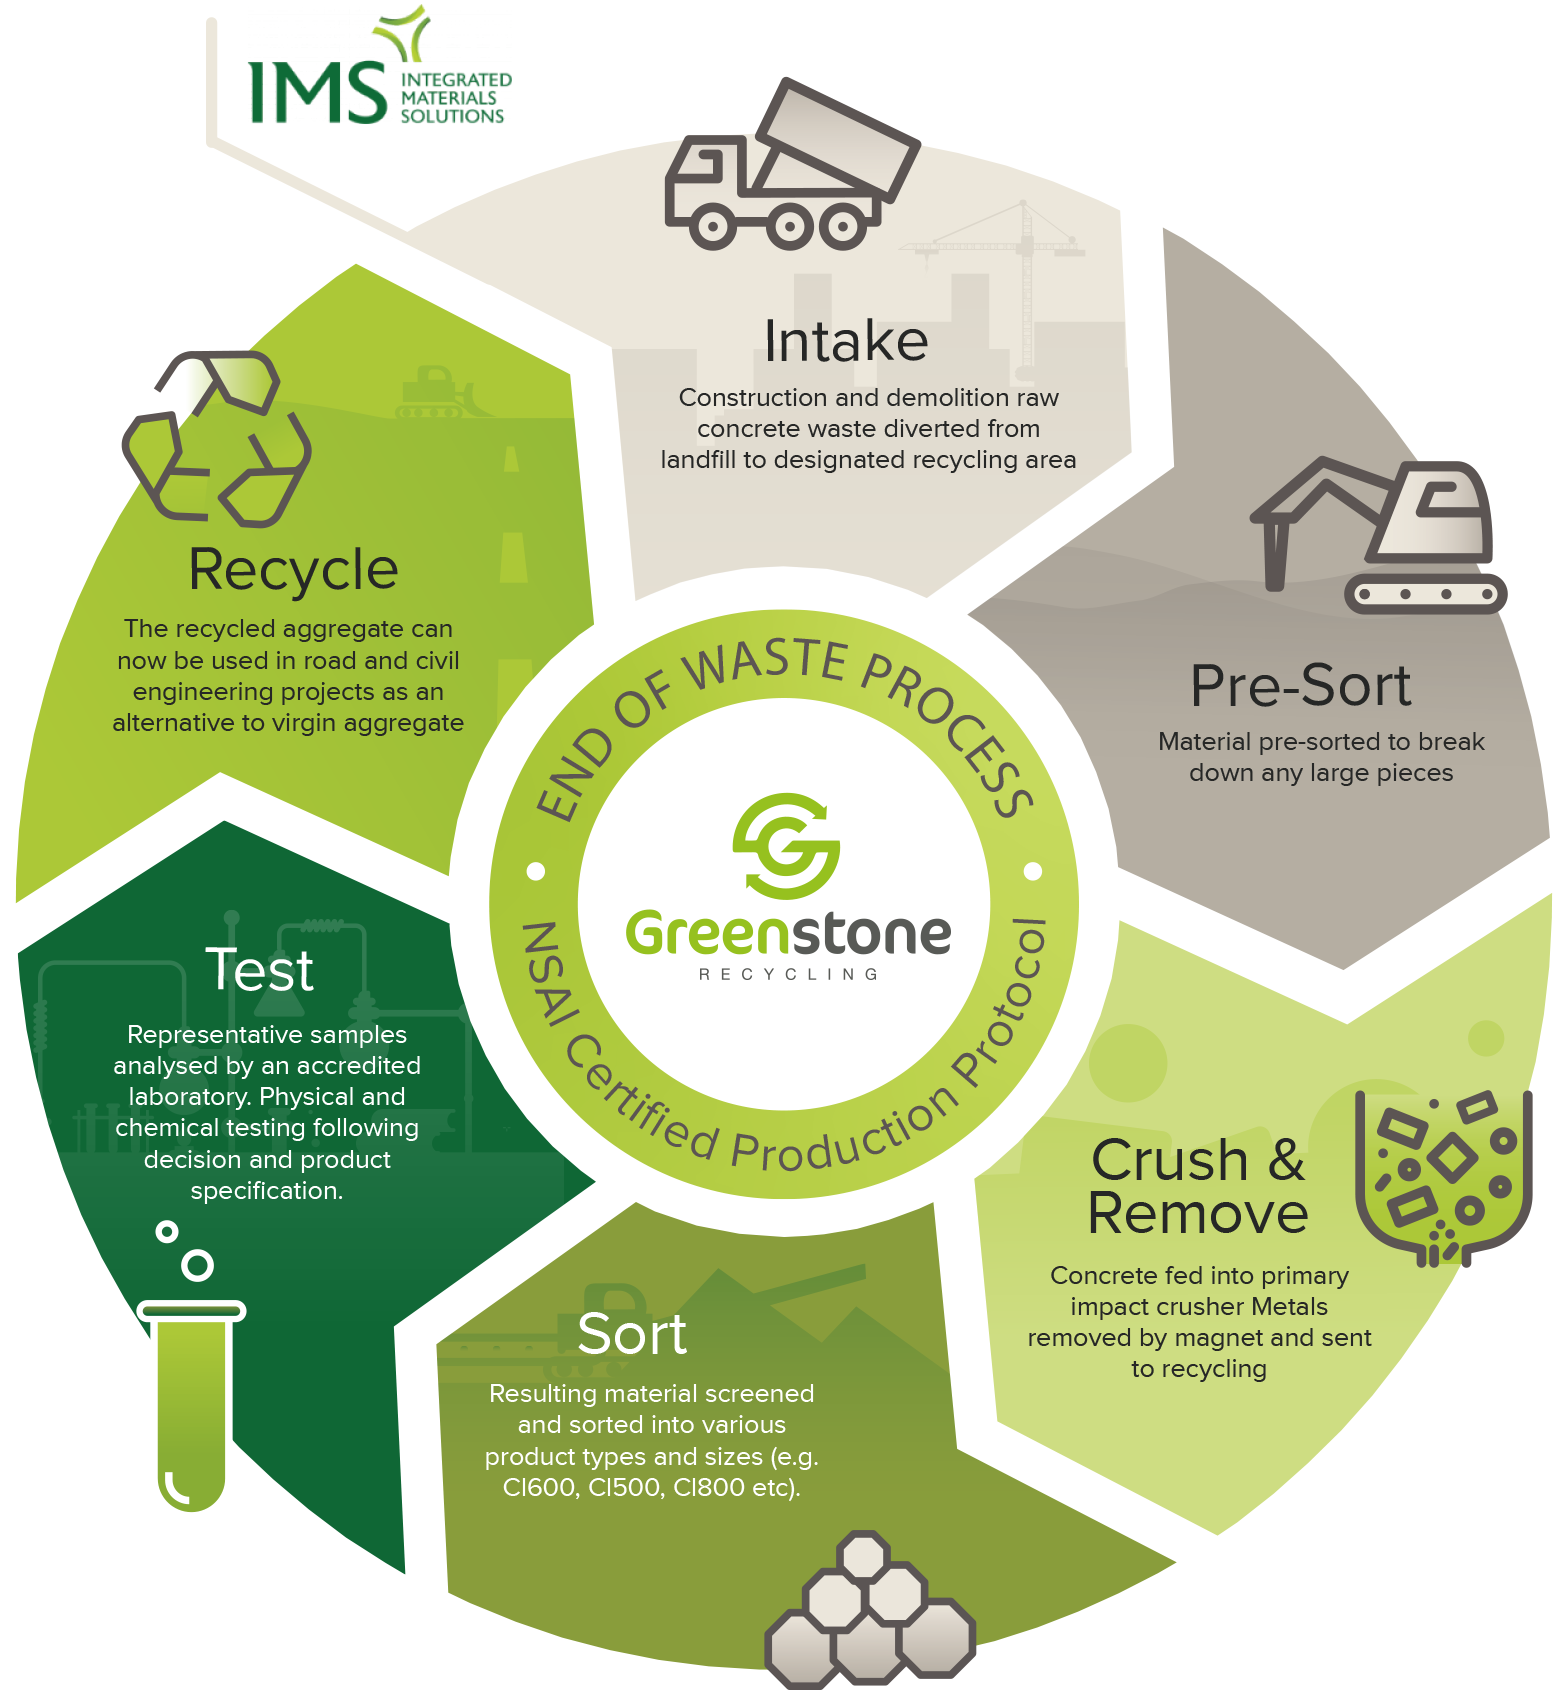 Greenstone Recycling, End of waste process, NSAI certified production protocol